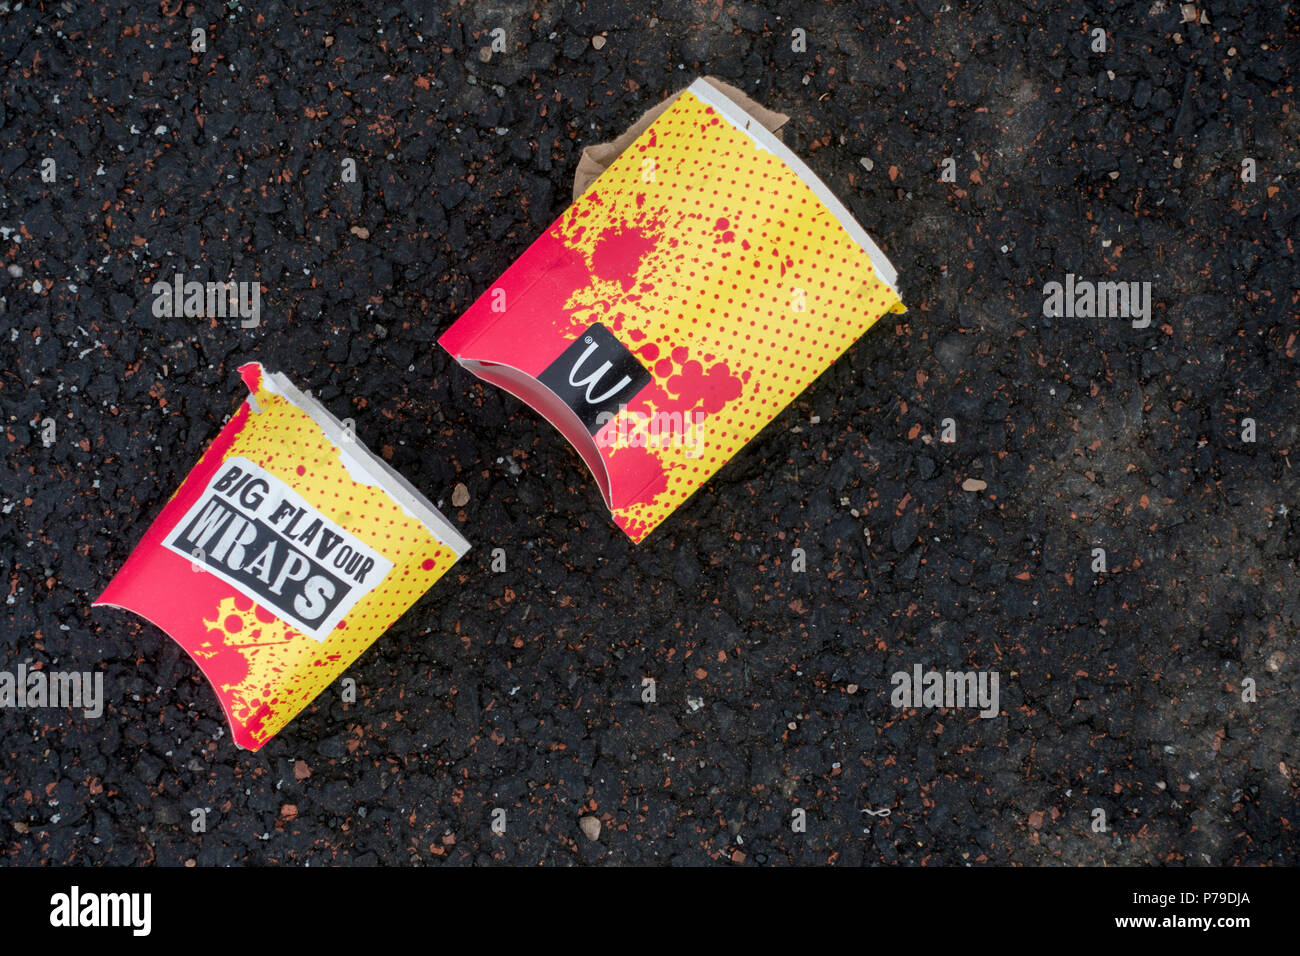 Crushed McDonalds cardboard food and drink packaging littering the ground - Stock Image